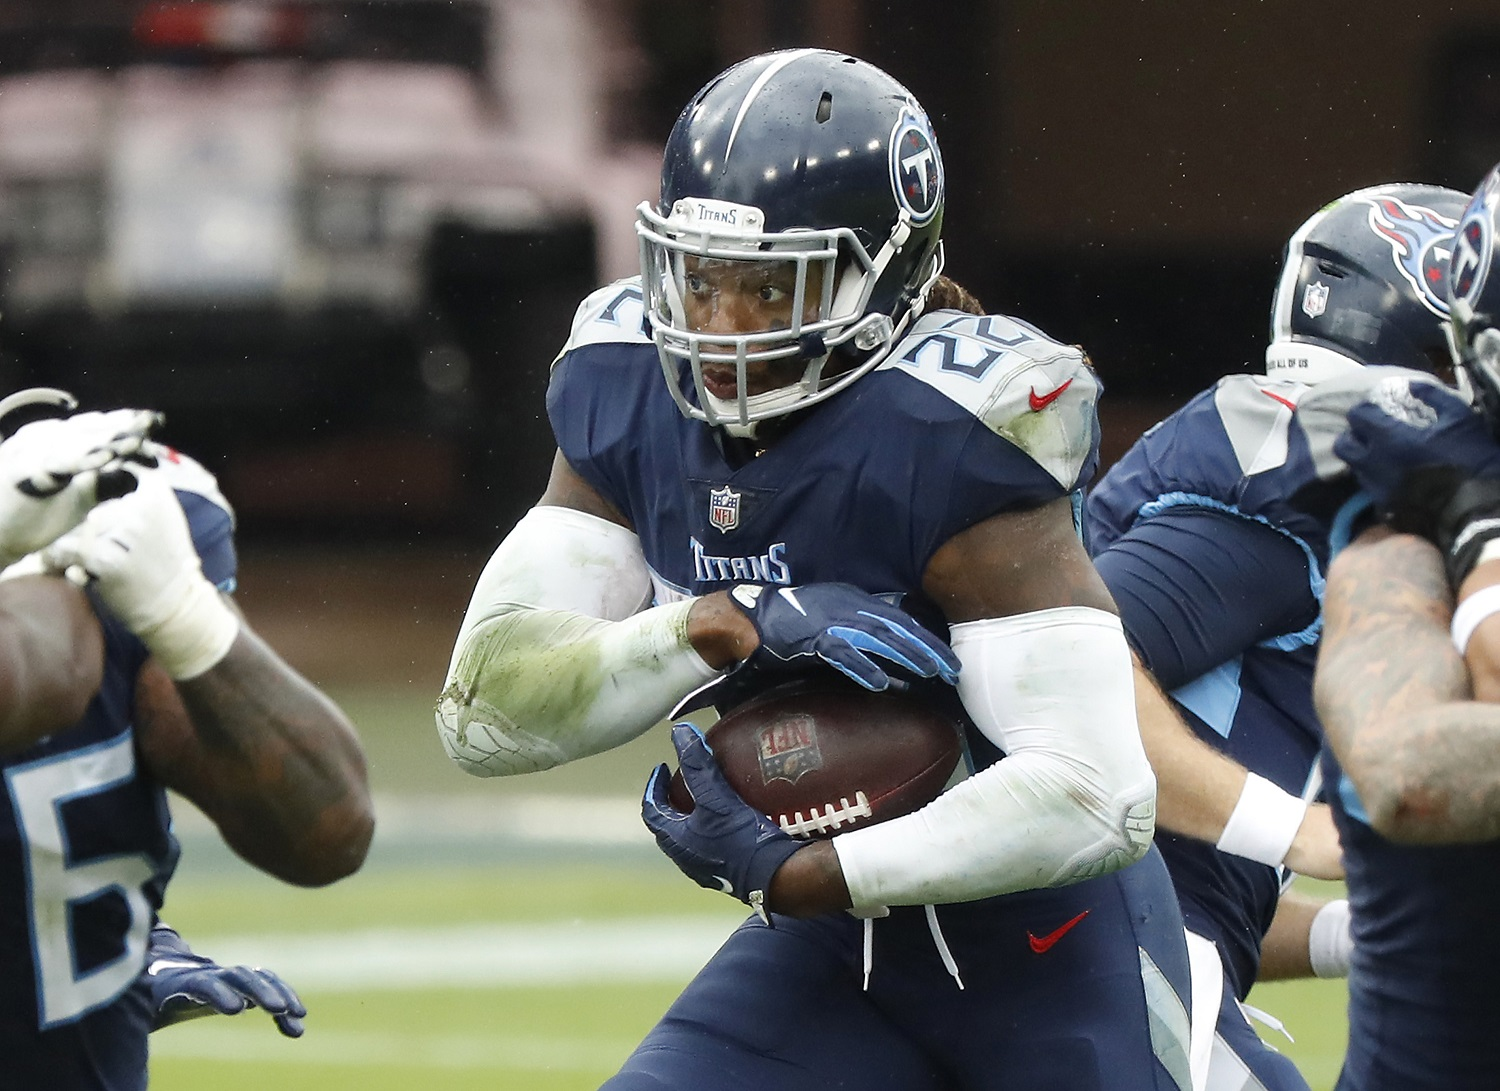 Derrick Henry Set an NFL Record on Sunday and Also Joined an Exclusive Club That Includes 3 Hall of Famers